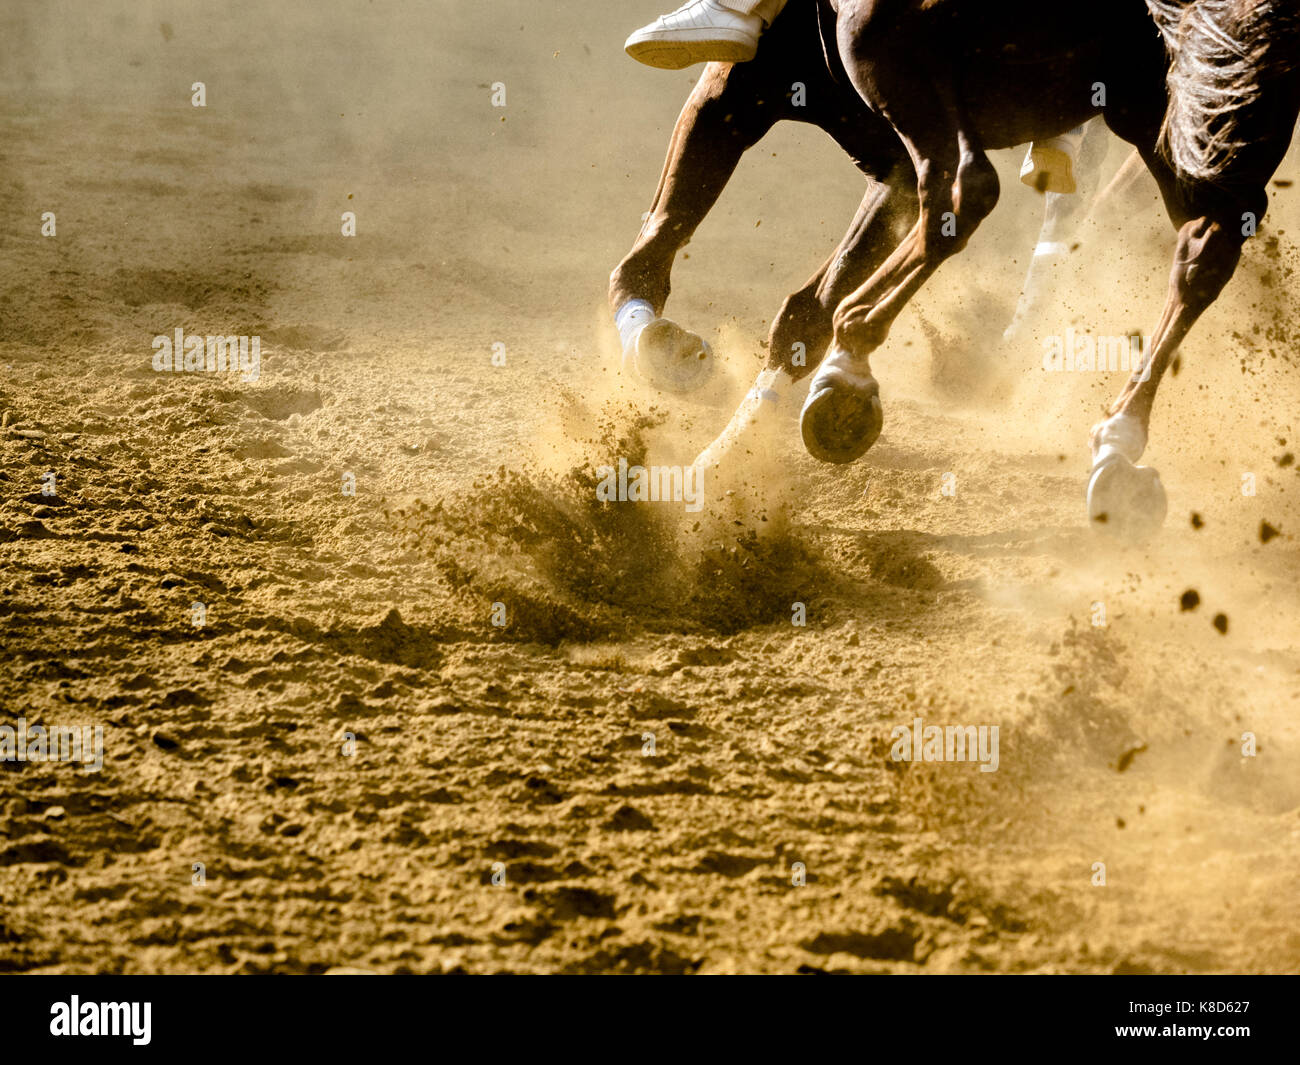 horse racing details of galloping horses legs on hippodrome - Stock Image